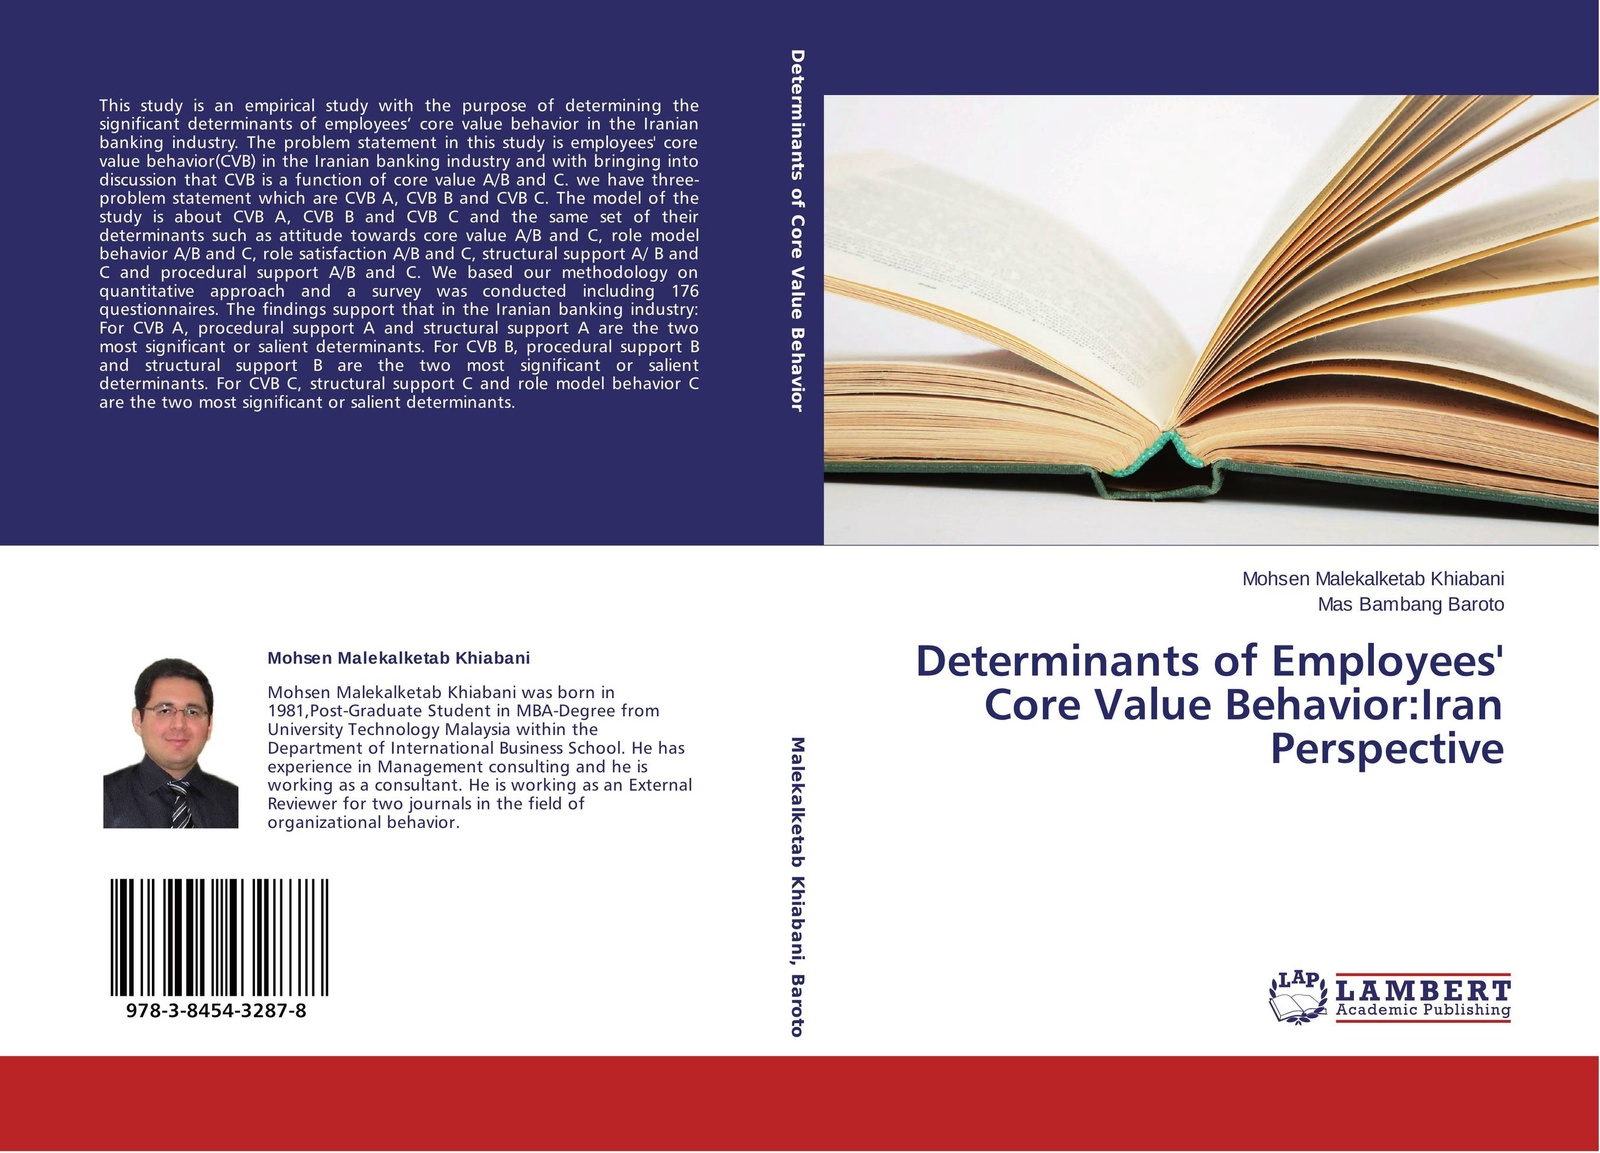 Mohsen Malekalketab Khiabani and Mas Bambang Baroto Determinants of Employees Core Value Behavior:Iran Perspective